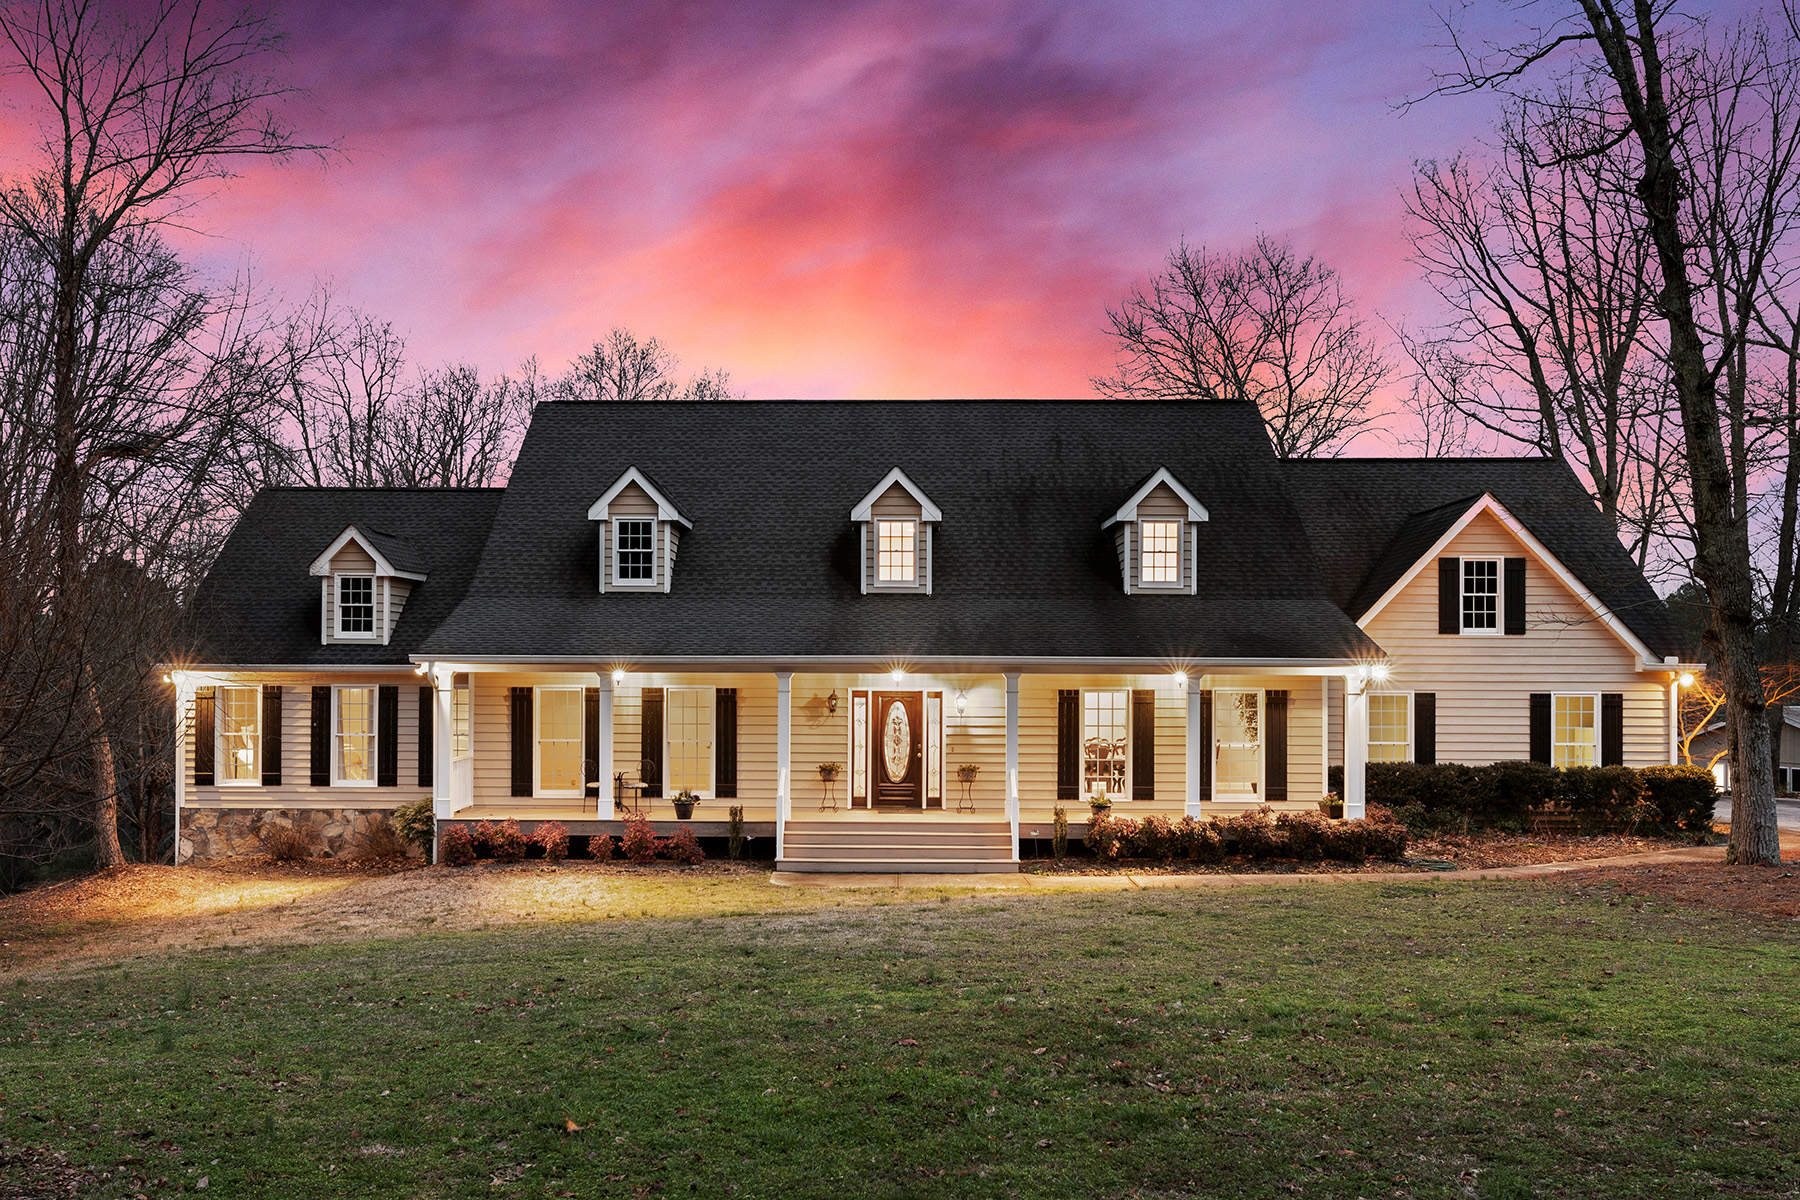 Single Family Homes for Active at Magnolia Farm, A Private Equestrian Estate 616 Mountain Road Woodstock, Georgia 30188 United States